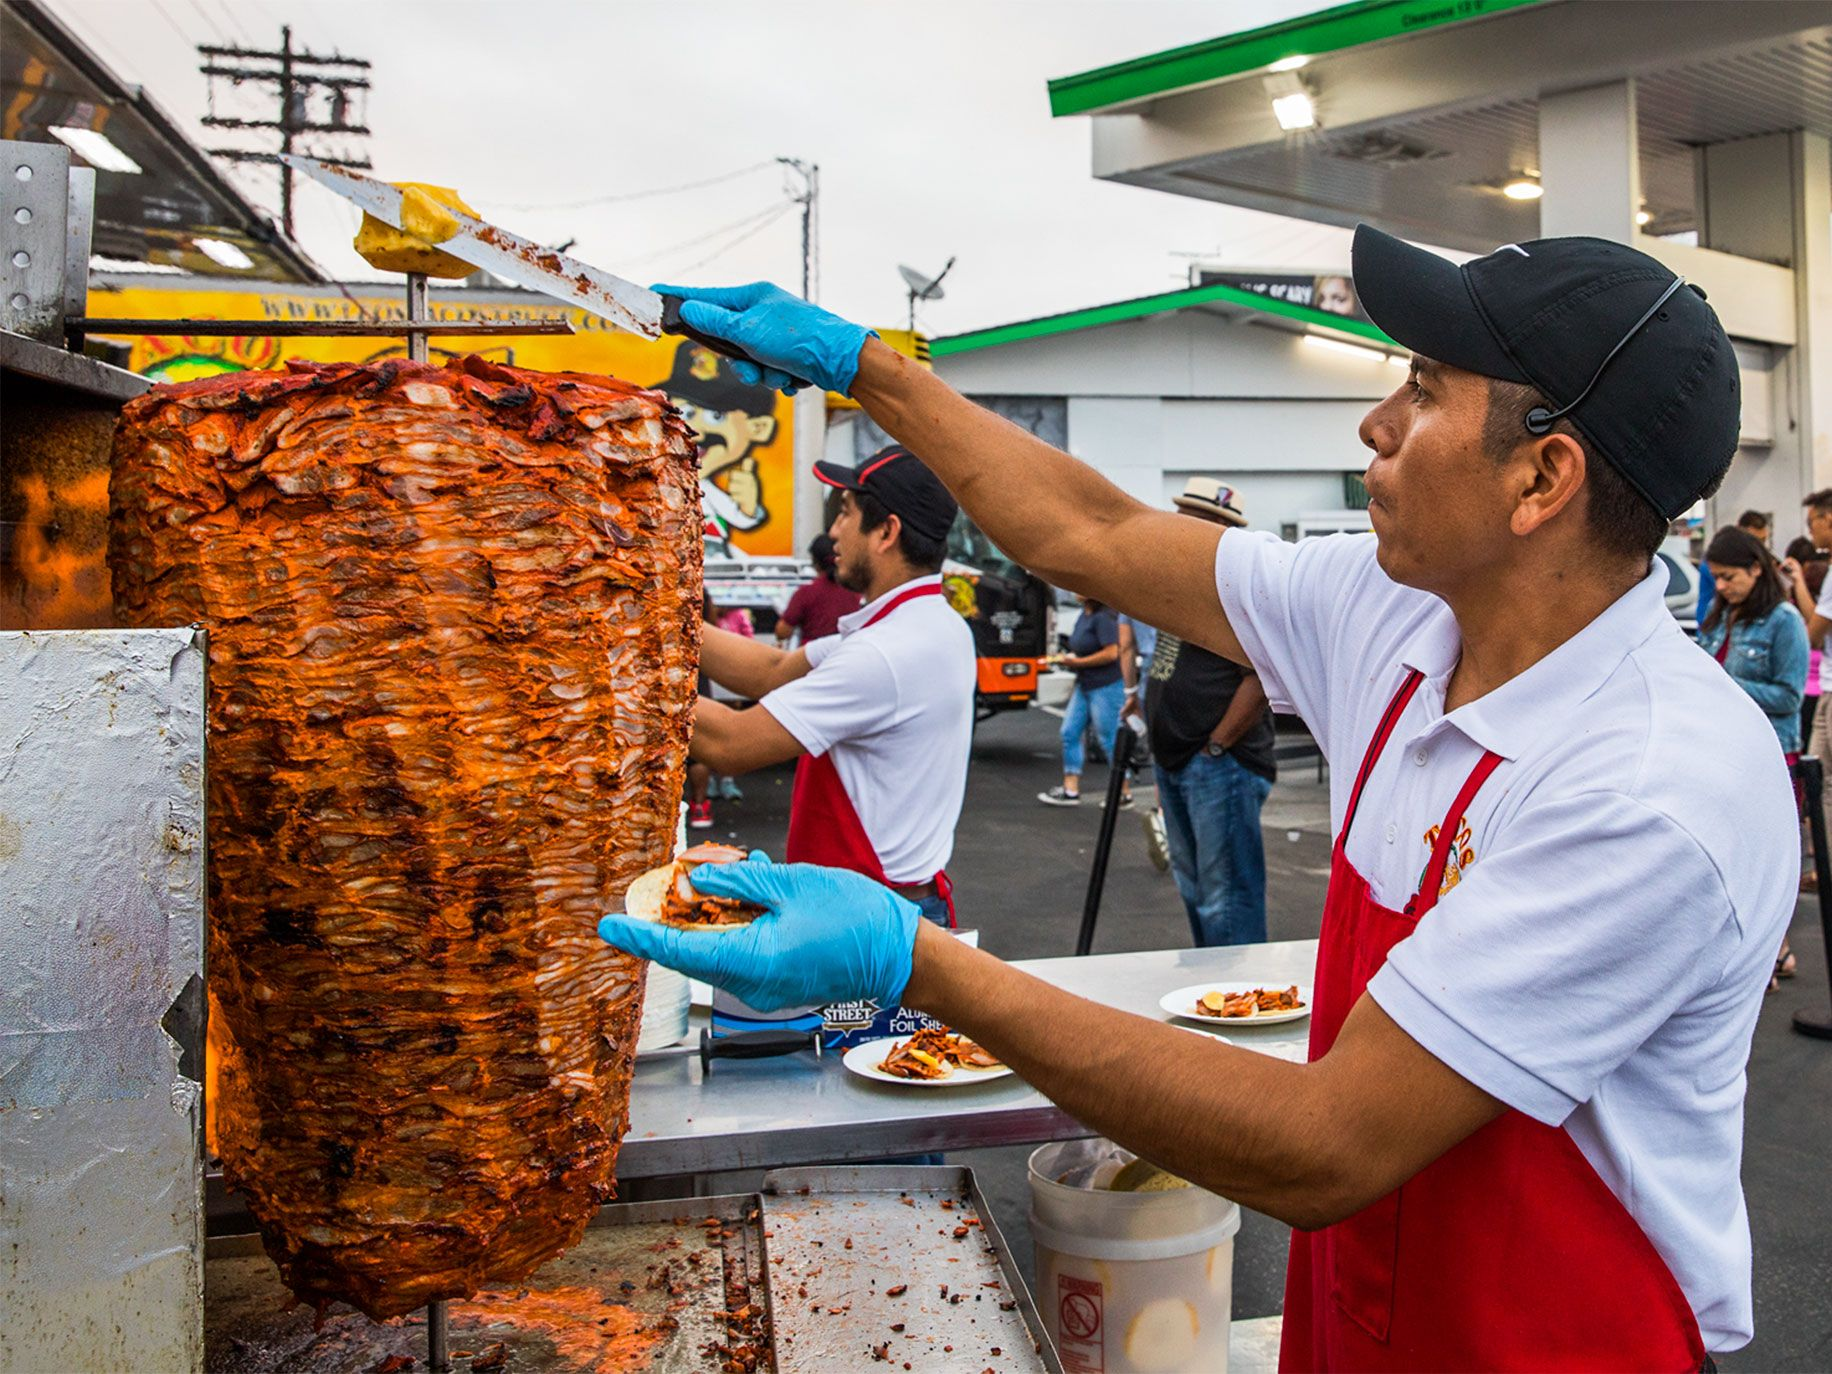 A worker slices off a piece of pineapple atop a spit of al pastor marinated pork on a vertical grill at Leo's Taco Truck.